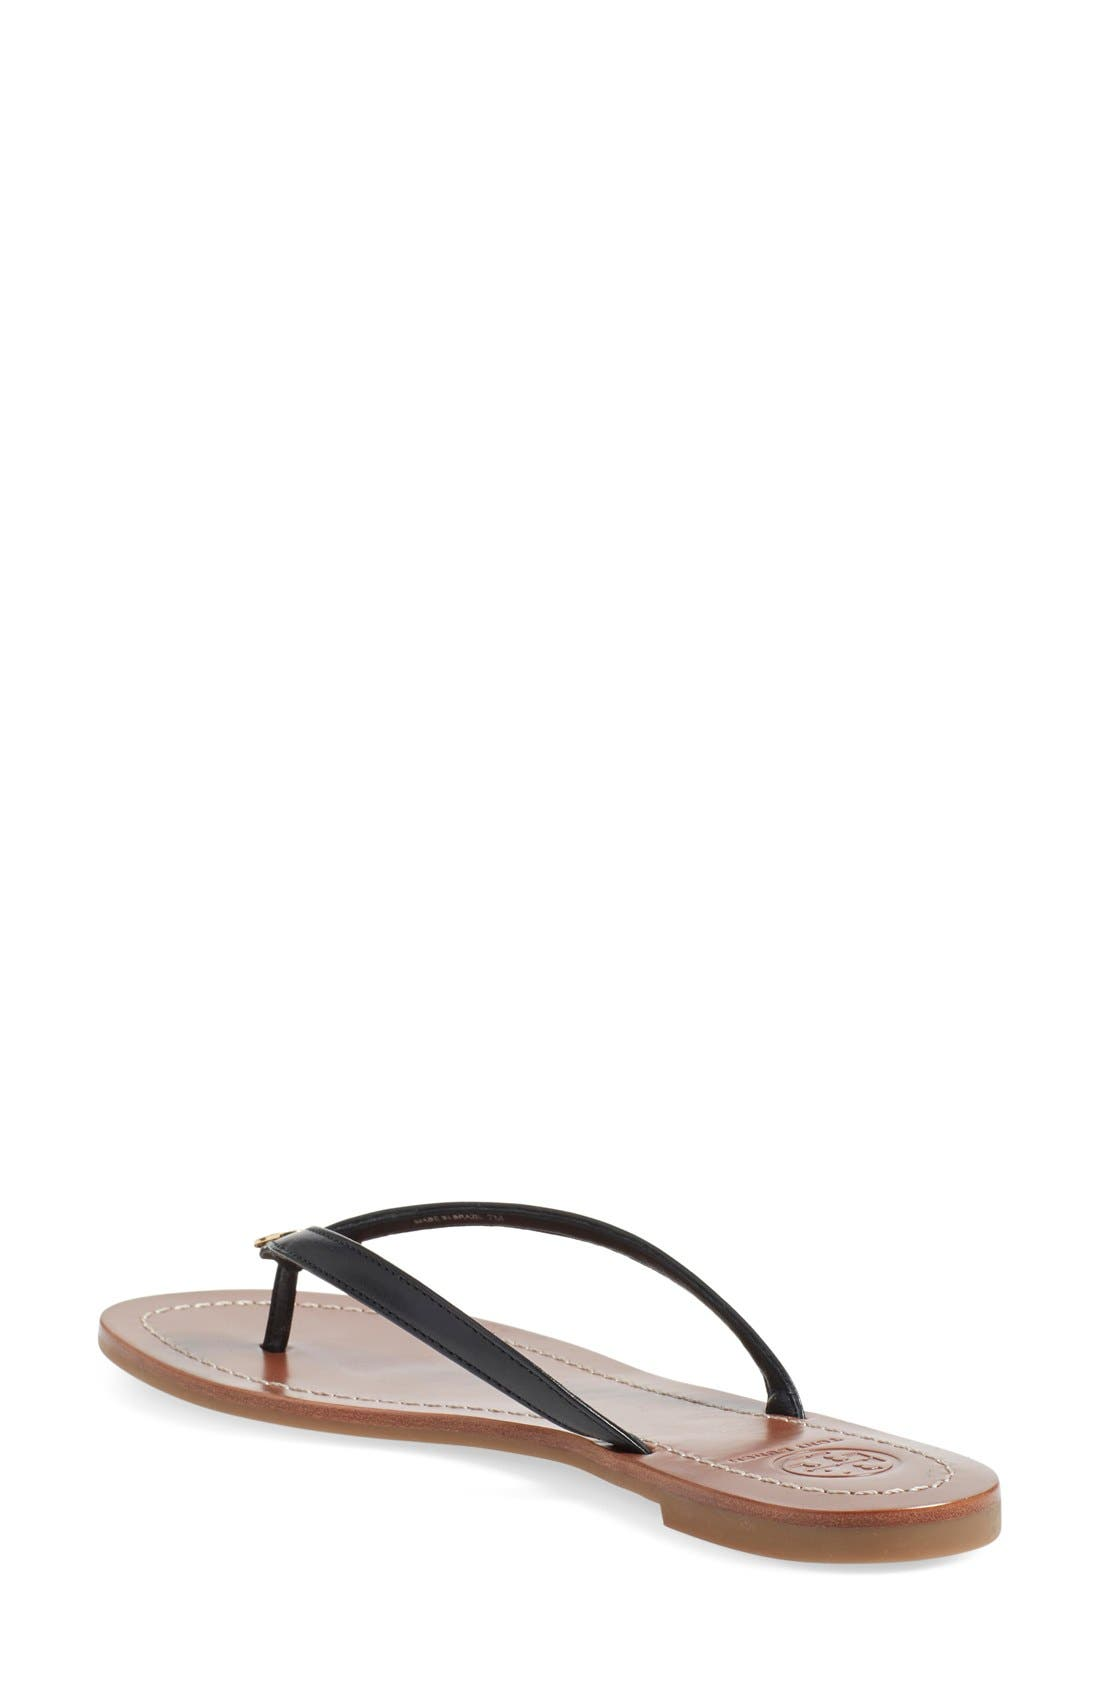 TORY BURCH, 'Terra' Flip Flop, Alternate thumbnail 4, color, 001